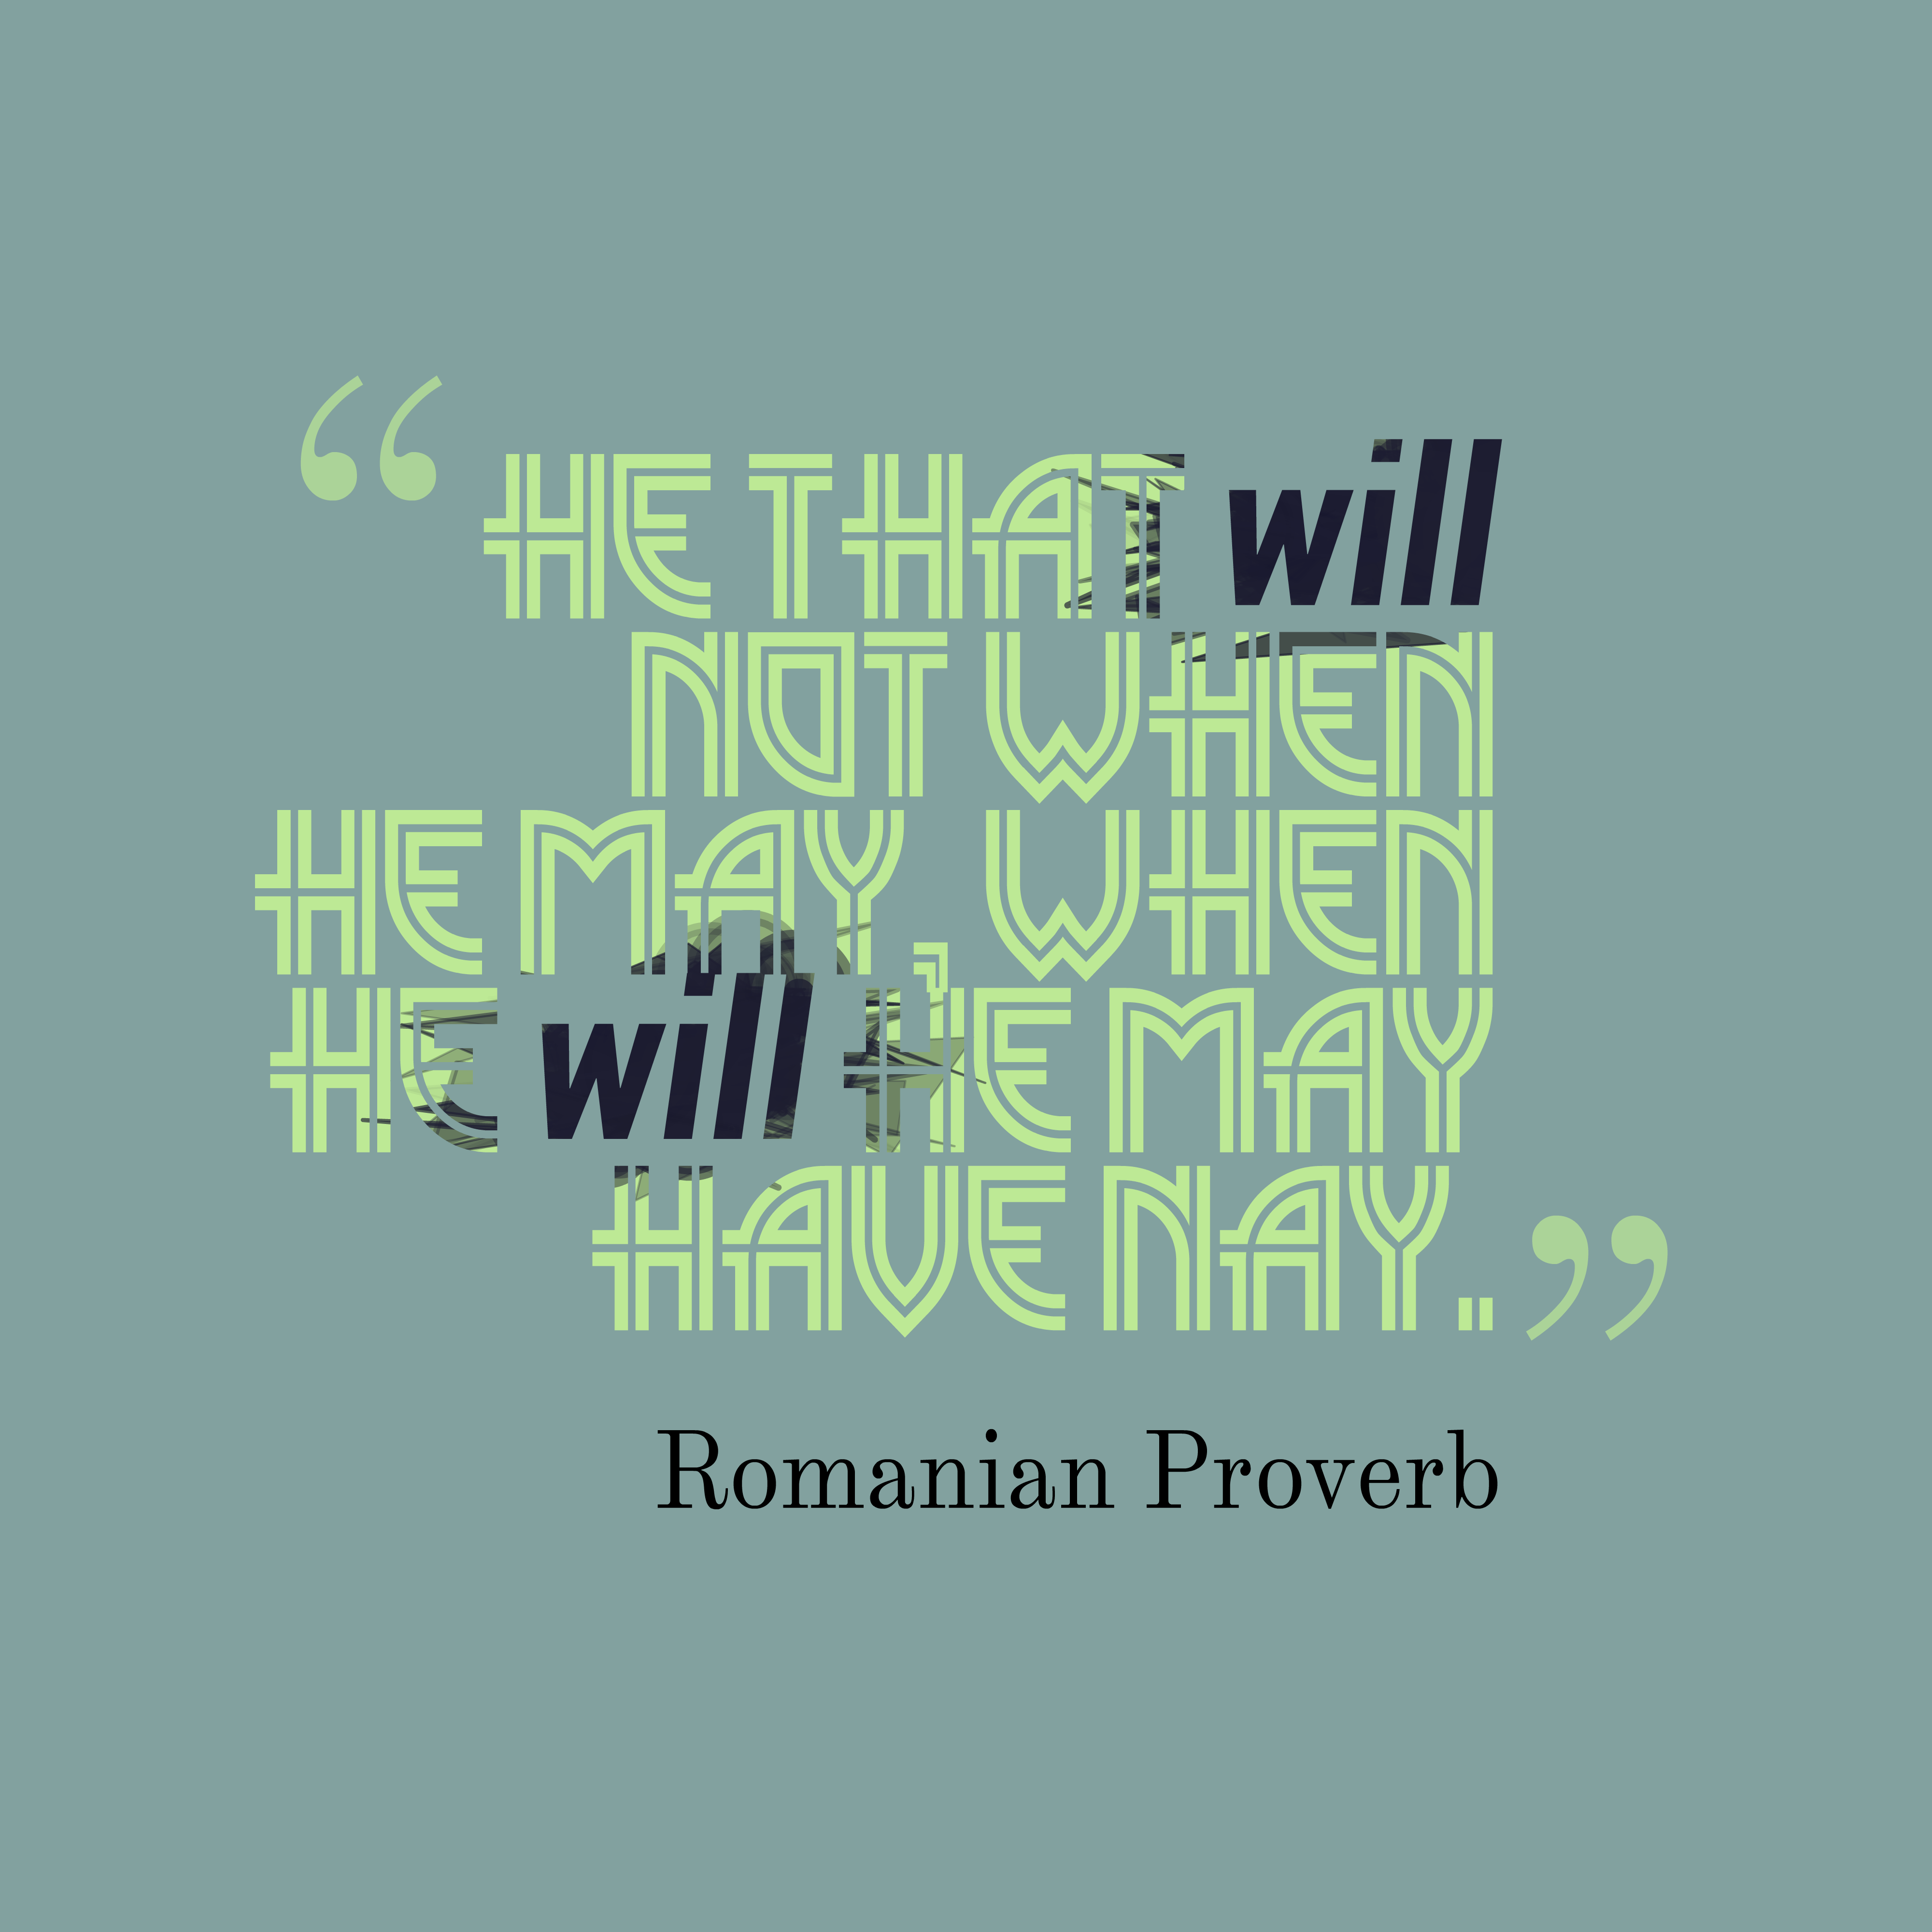 Quotescom: Picture » Romanian Proverb About Opportunity